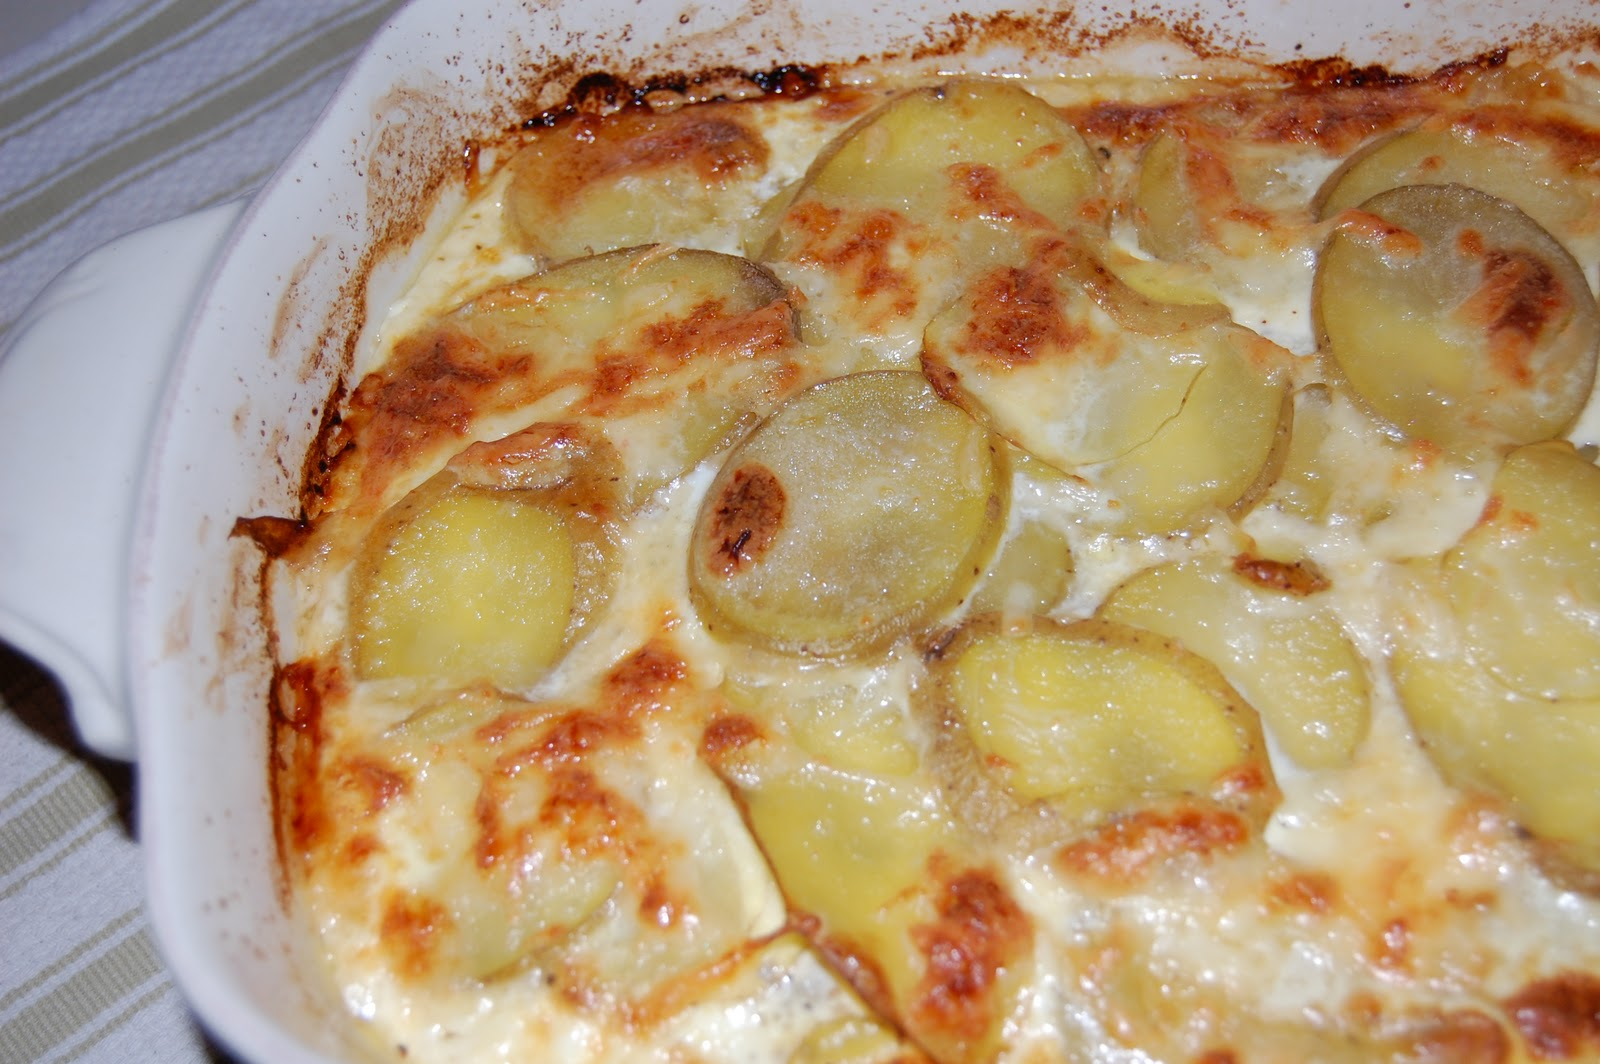 Kitchen Groovy: Three Cheese Potato Gratin